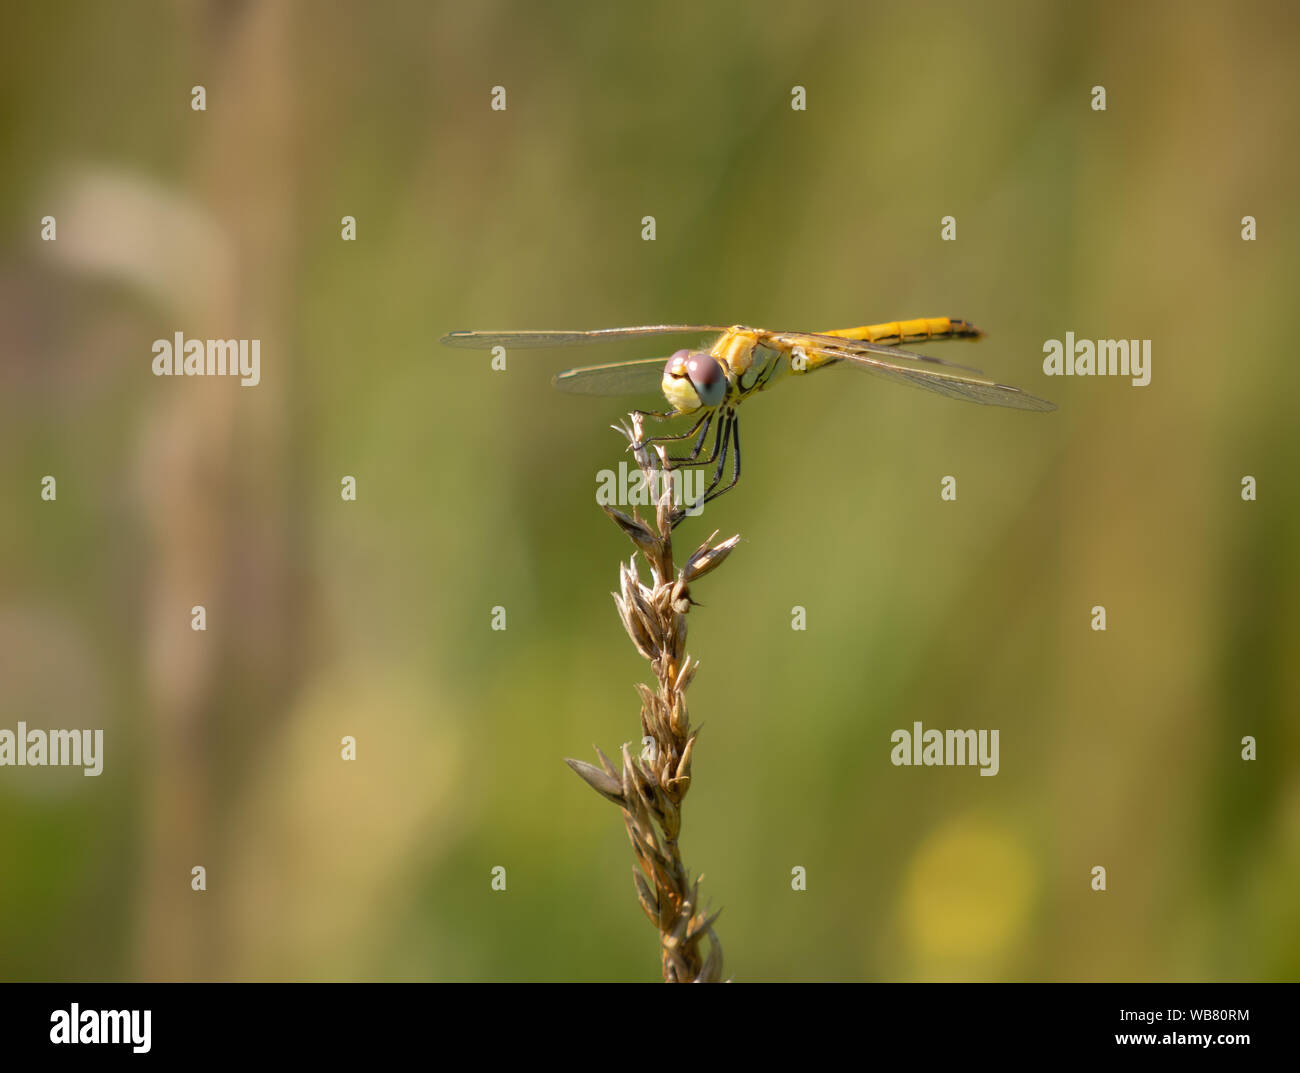 Yellow dragonfly - Red-veined Darter, Sympetrum fonscolombii. Stock Photo